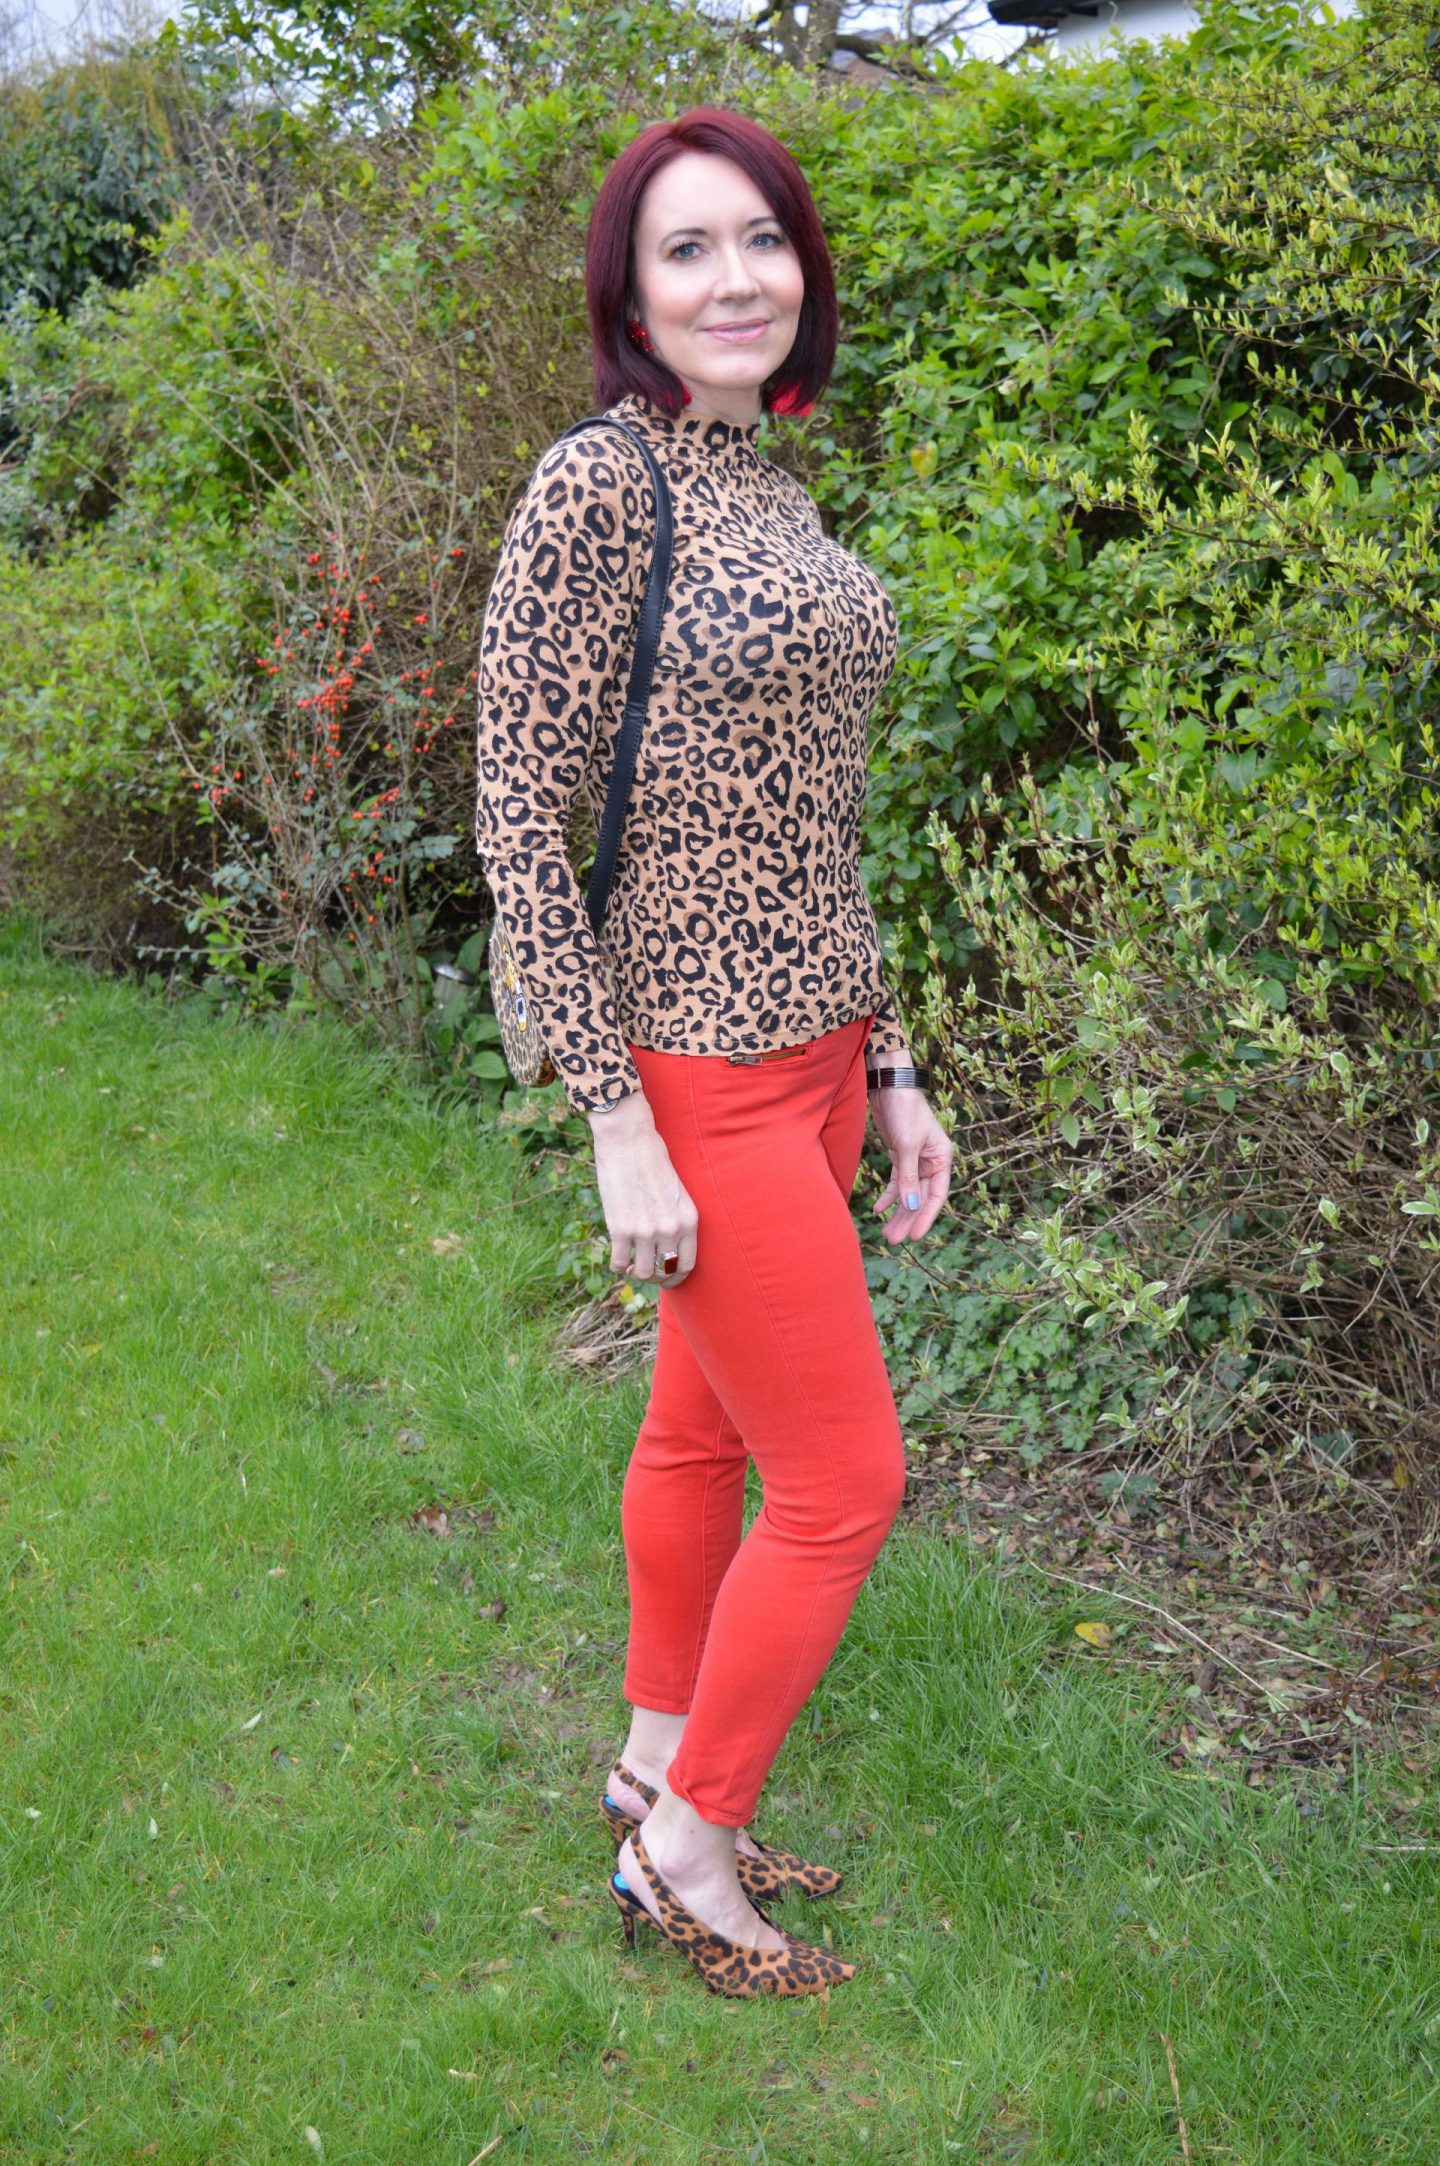 Coloured Denim For Spring - March Stylish Monday link up, Red Herring leopard print top, Skinny Dip leopard print bag, Dune leopard print sling back shoes